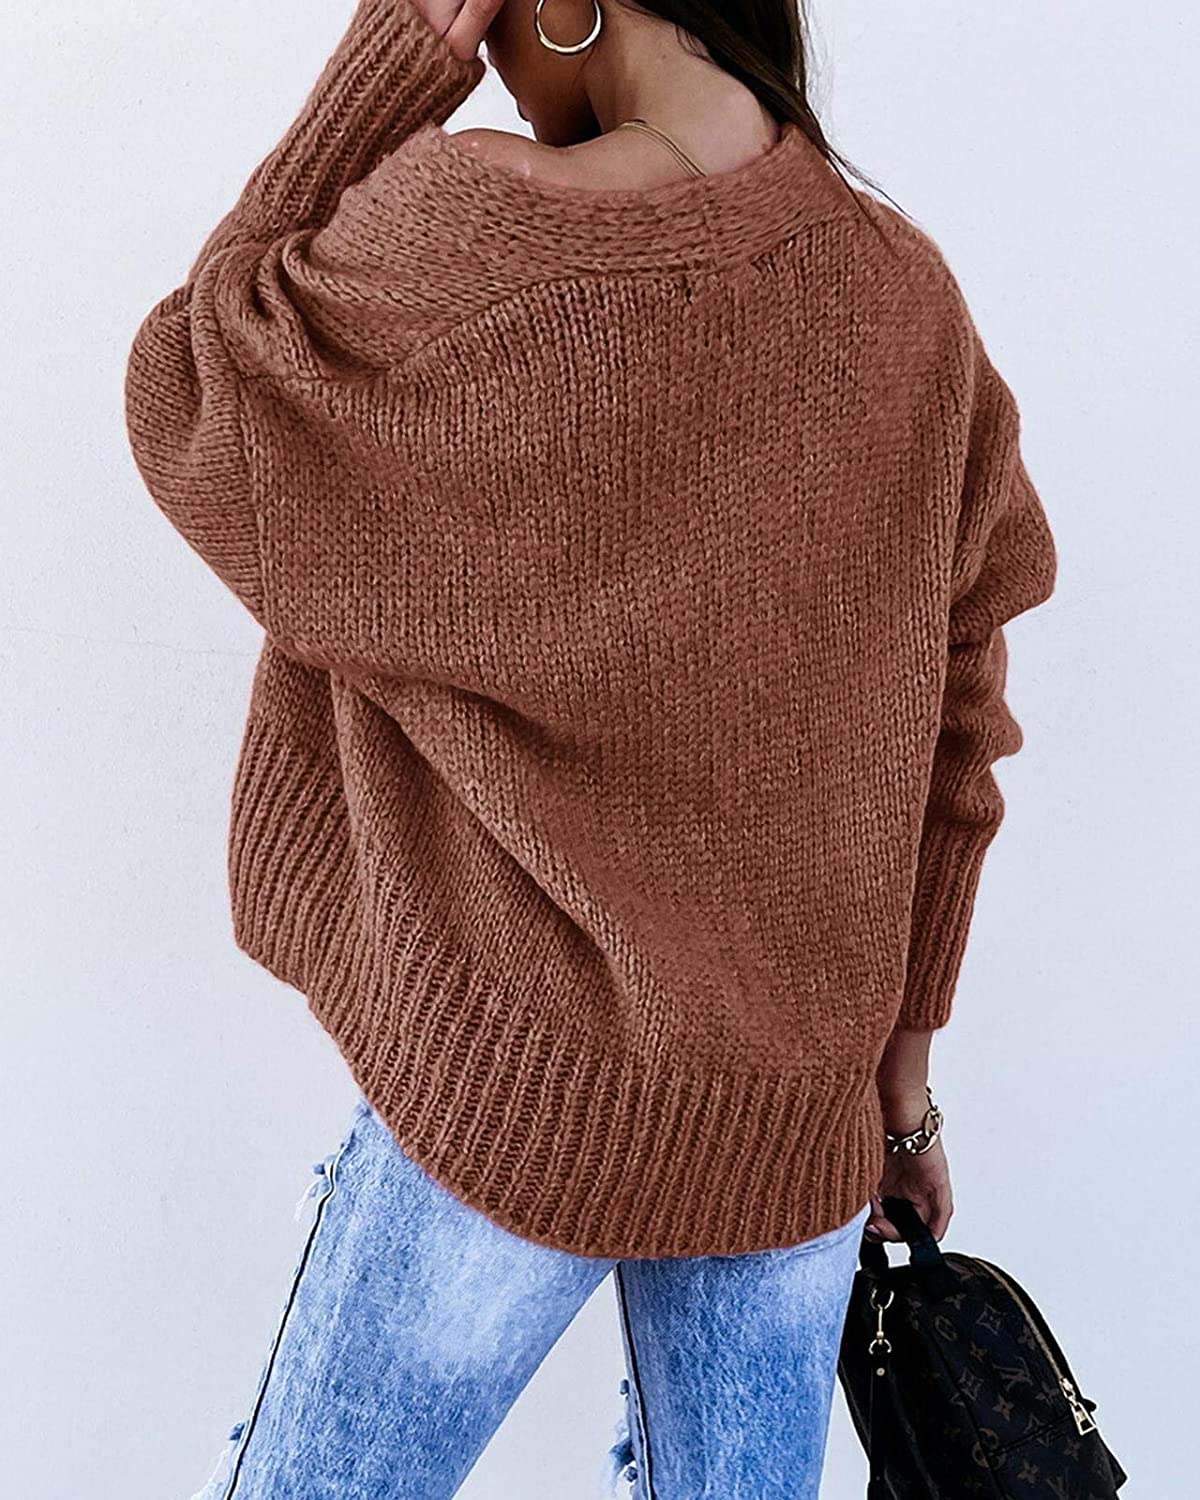 Dellytop Womens Button Down Cropped Cardigan Sweater Off Shoulder Long Sleeve Chunky Knit Outwears